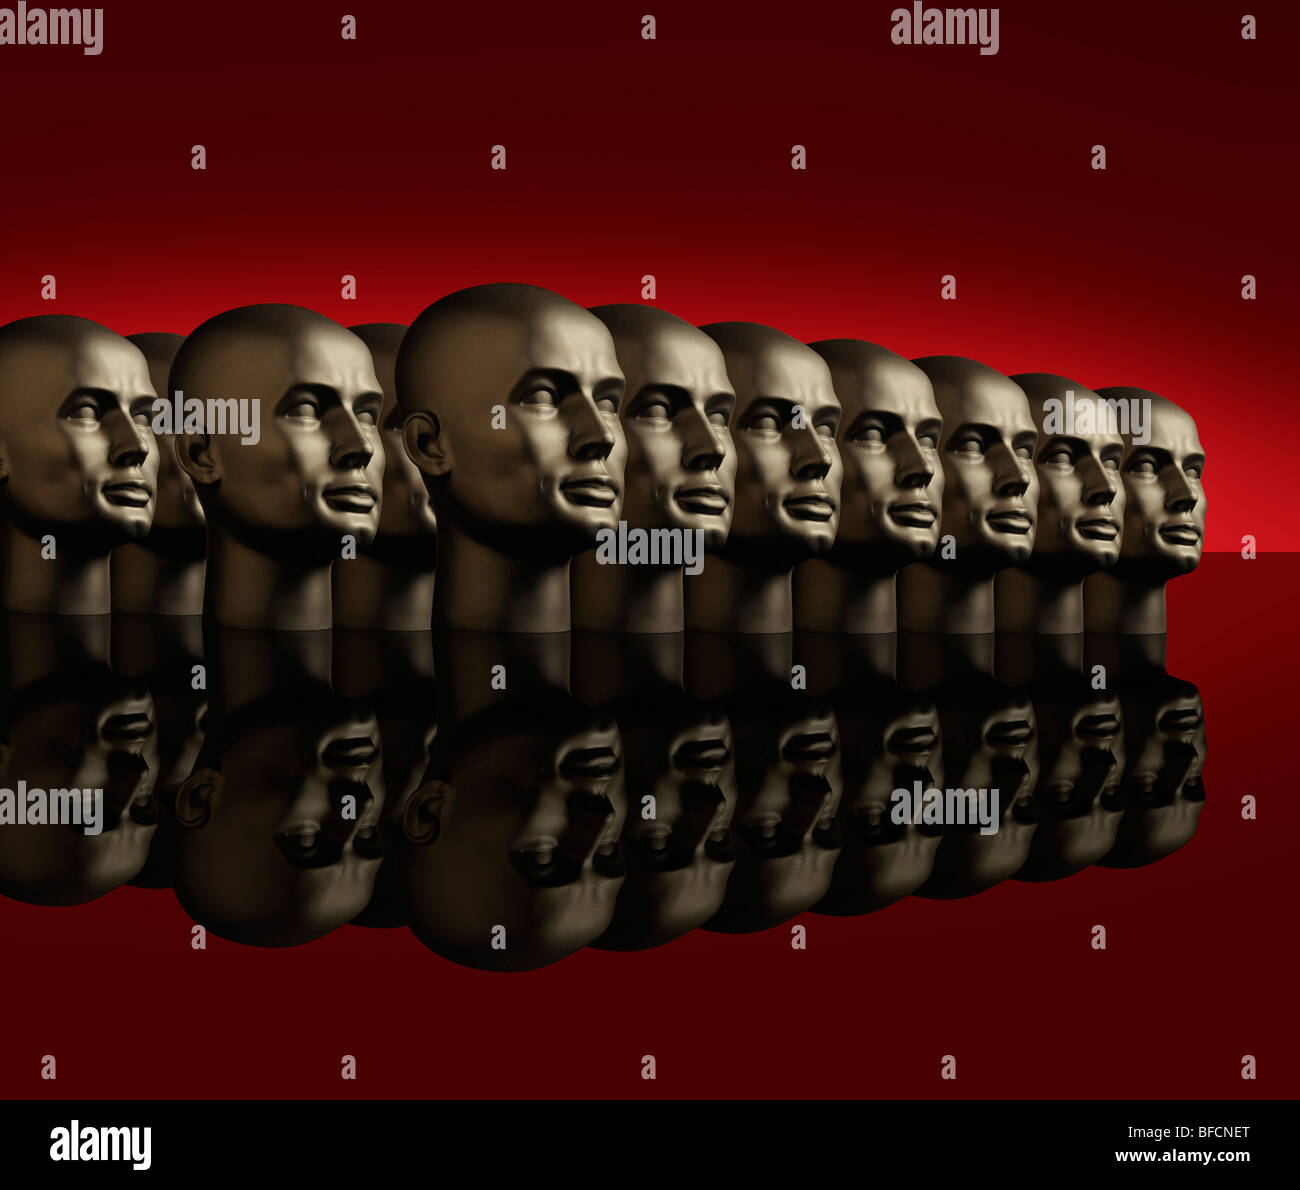 Metallic android mannequin heads lined up in several rows on a reflective black surface with a red background - Stock Image